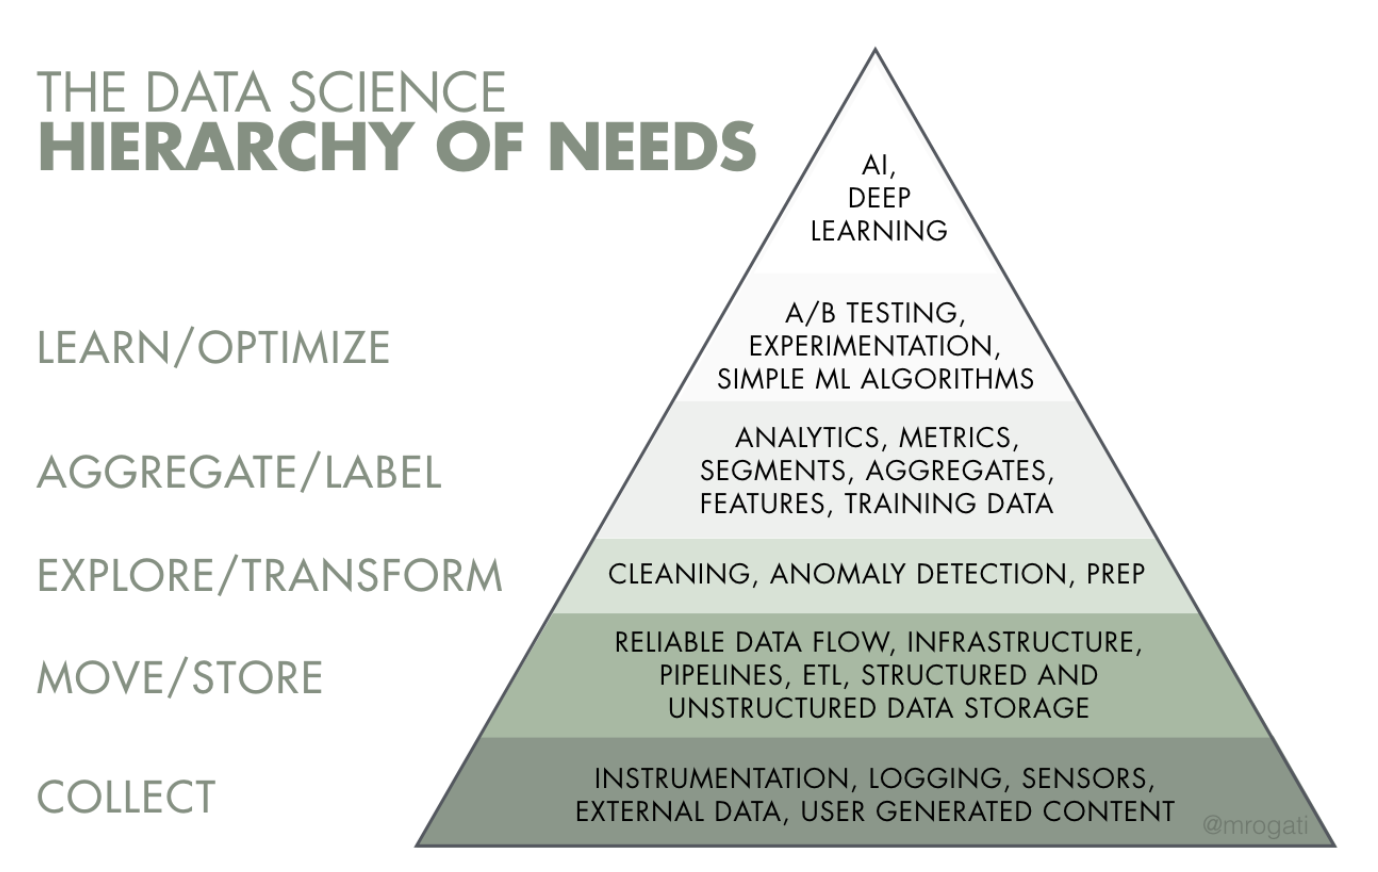 A Beginner's Guide To Data Engineering Part I Robert Chang Medium. Source Monica Rogati's Fantastic Medium Post The Ai Hier Y Of Needs. Wiring. Data Warehouse Architecture Diagram Vsd At Scoala.co